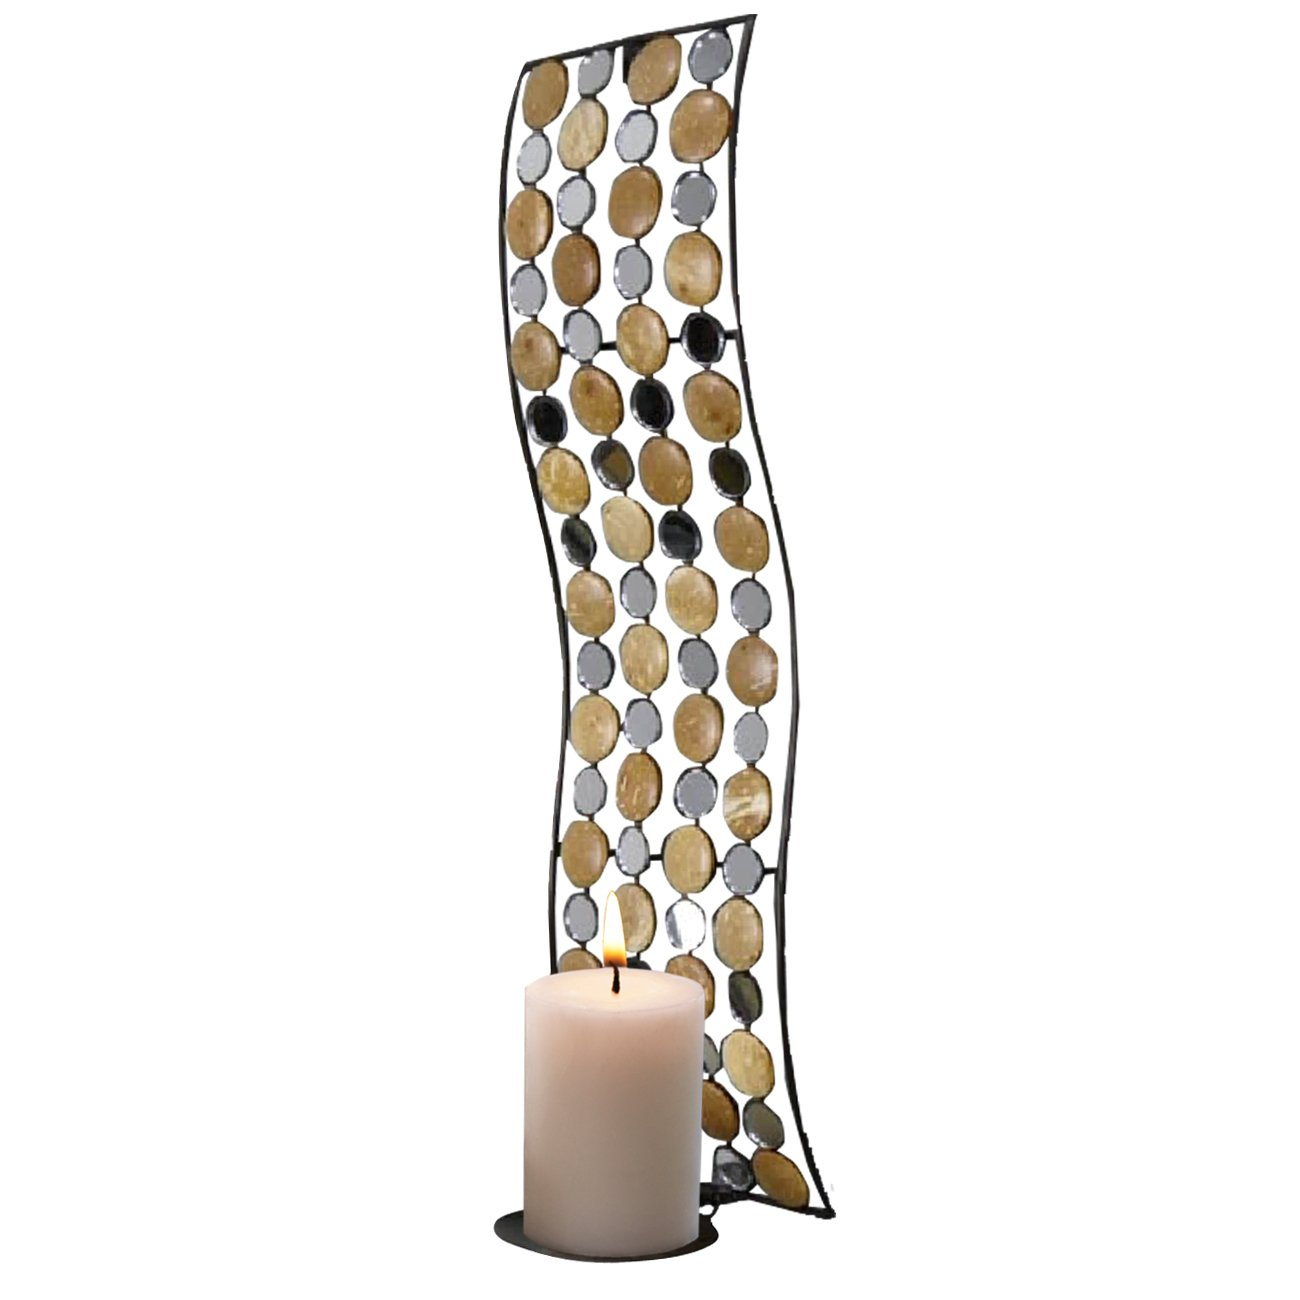 Home Source 400-22293 Decorative Metal Sconce with Candle Holder, 20.08 by 5.71-Inch Home Source Industries